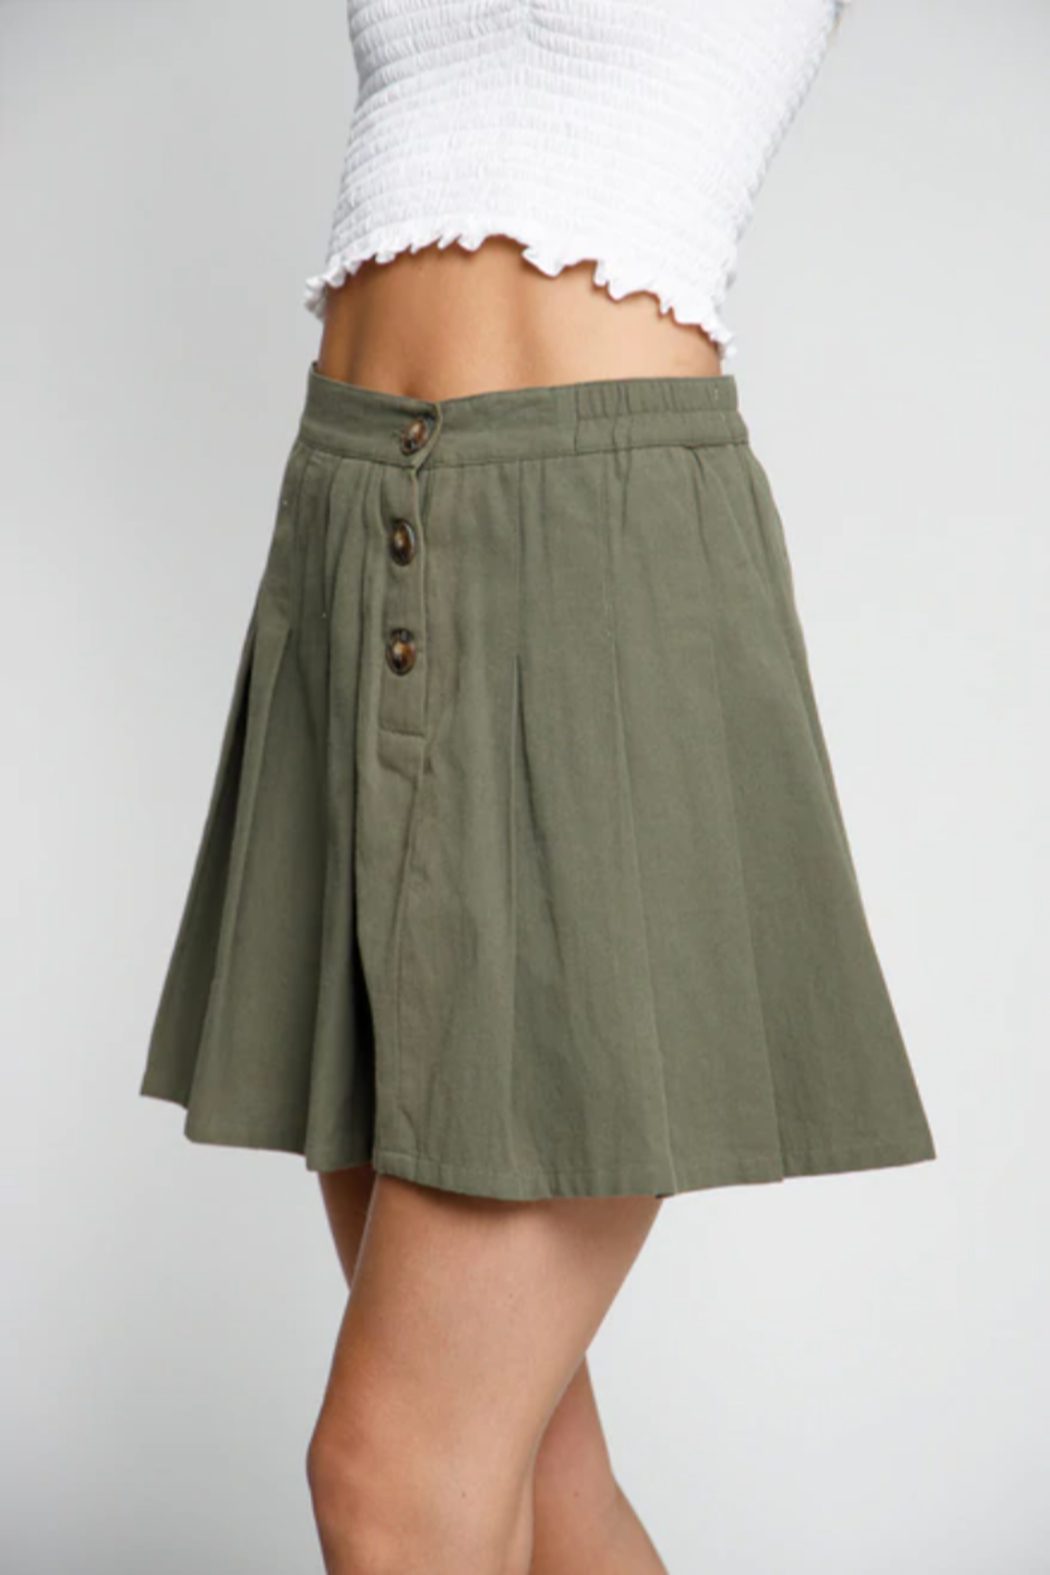 Wholesale Fashion Couture Olive Fit n' Flare Skirt - Main Image